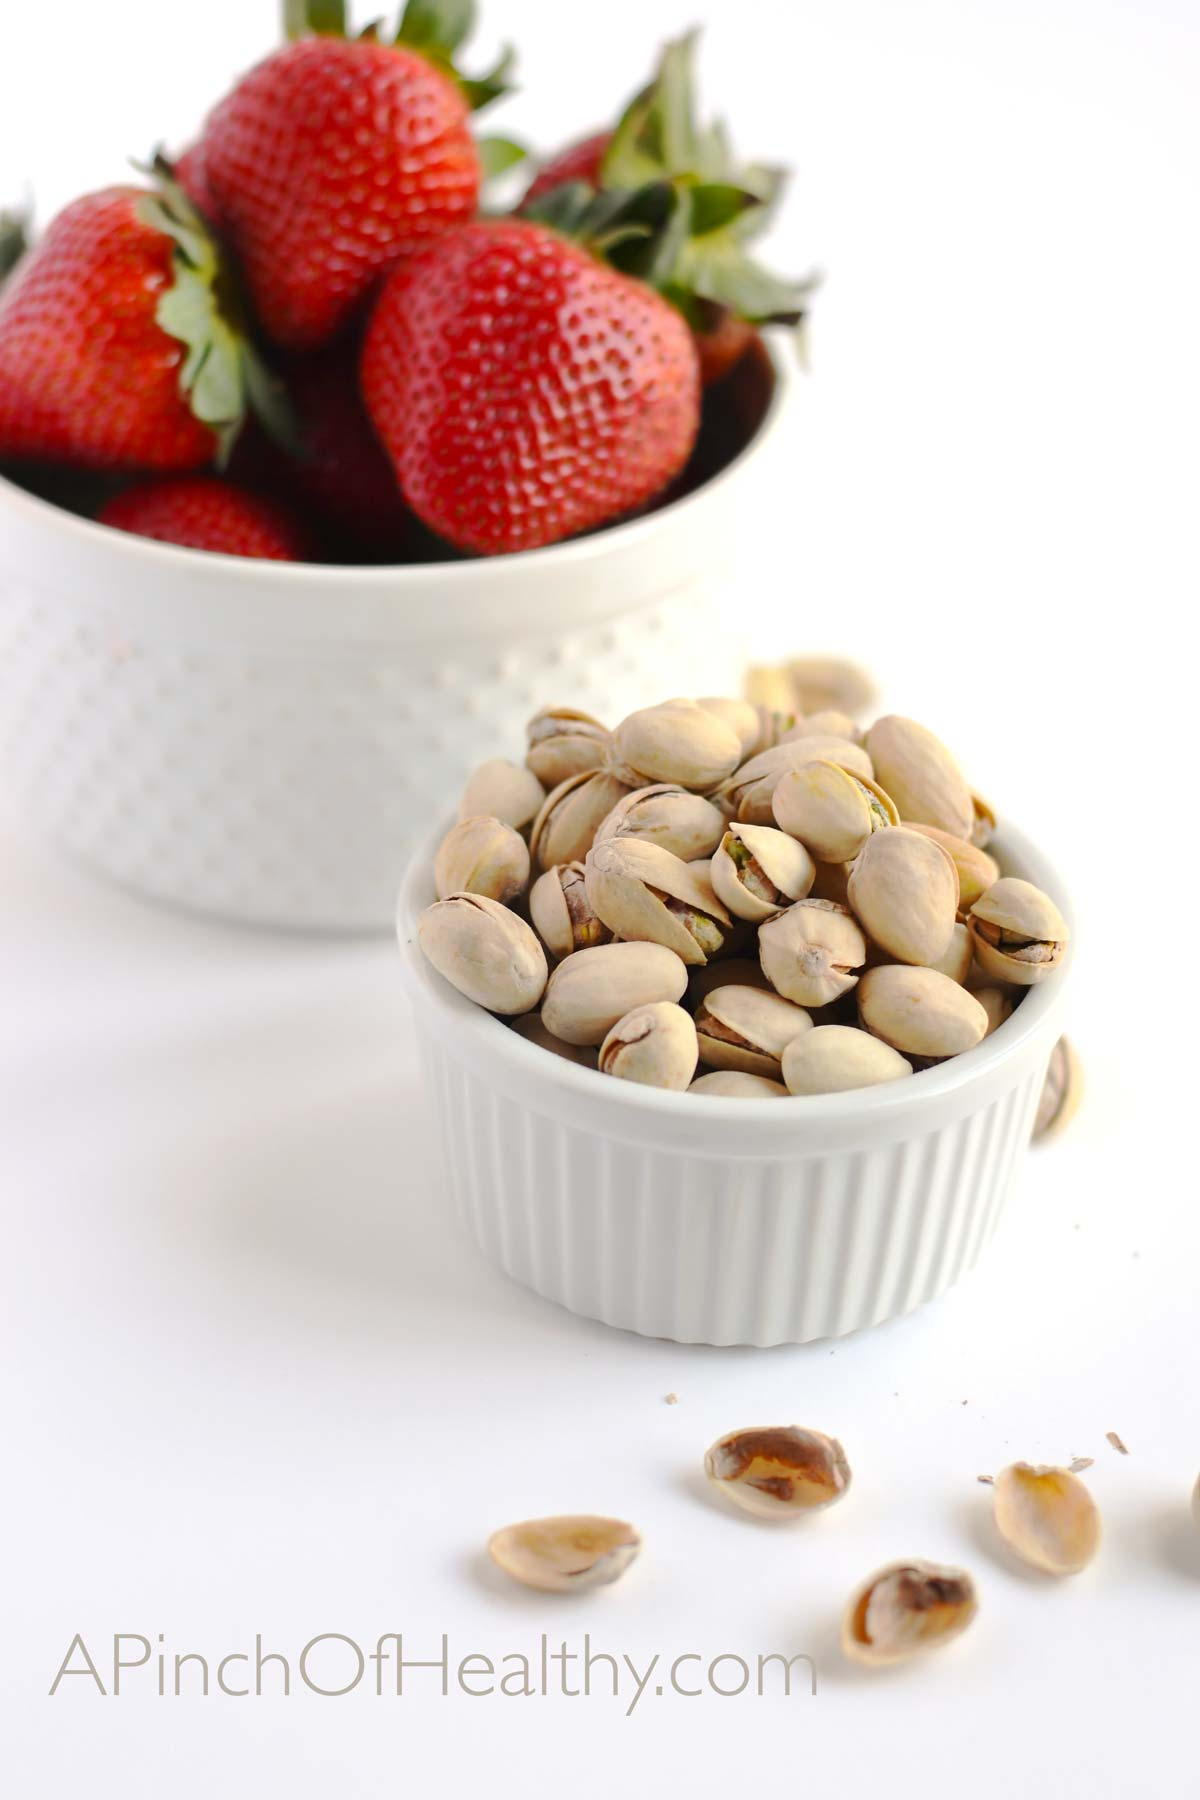 Fool Yourself Full With Pistachios| APinchOfHealthy.com